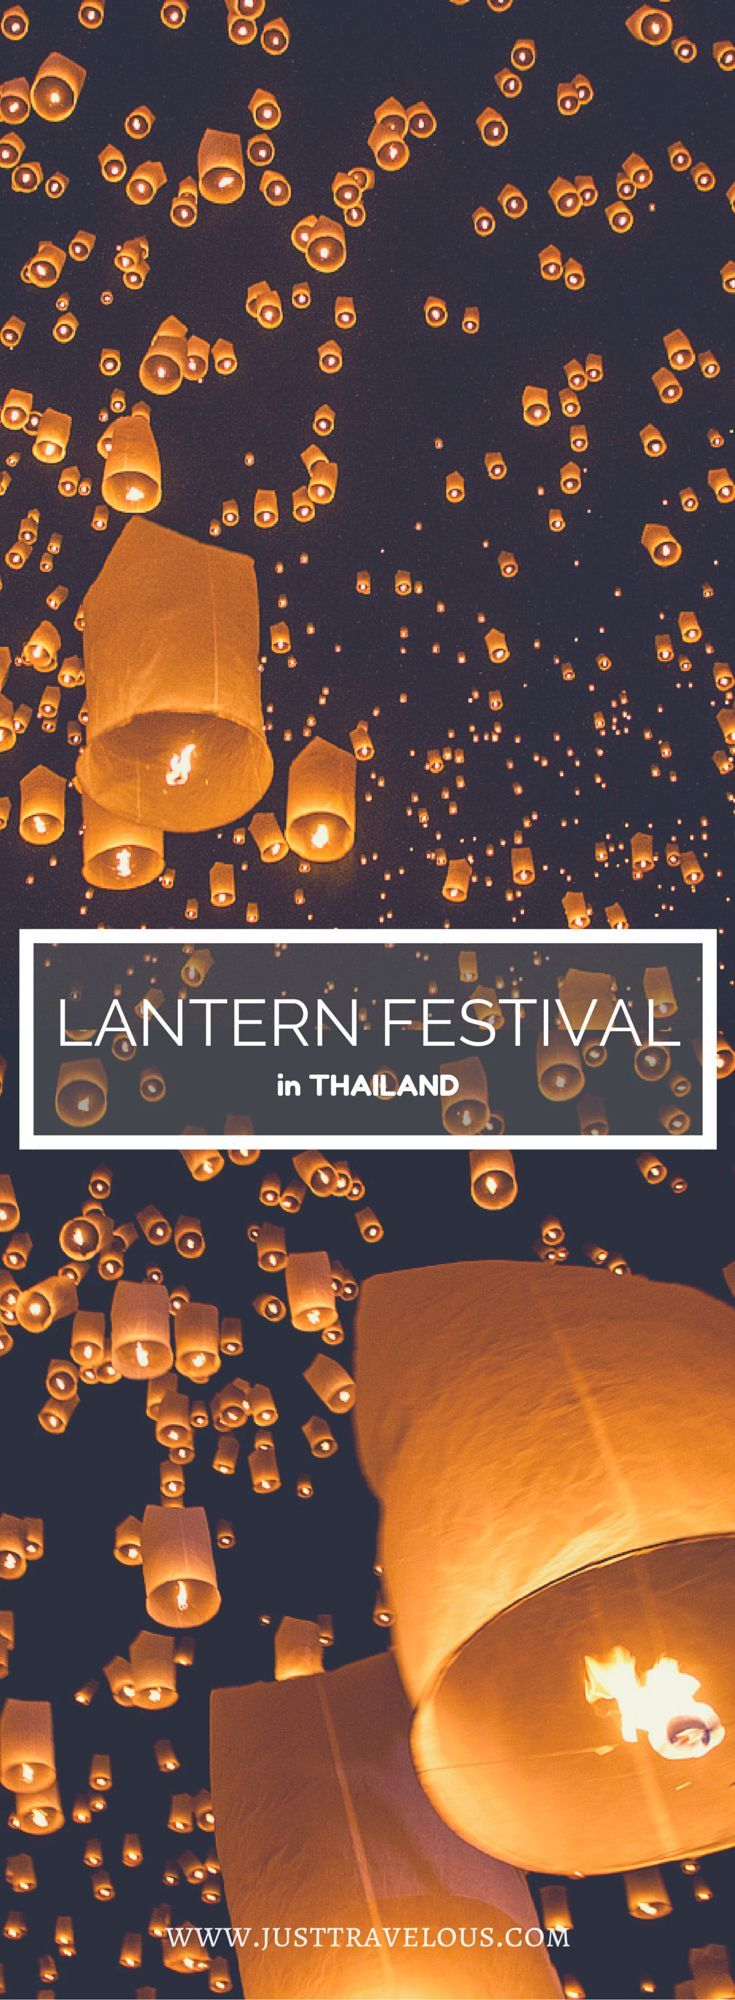 The Yee Peng festival in Northern Thailand is the lantern Festival every backpacker is dreaming about. I've been there and I'll tell you where you can raise your lantern in Chiang Mai. #thailand #yeepeng #loykrathong #chiangmai #lantern